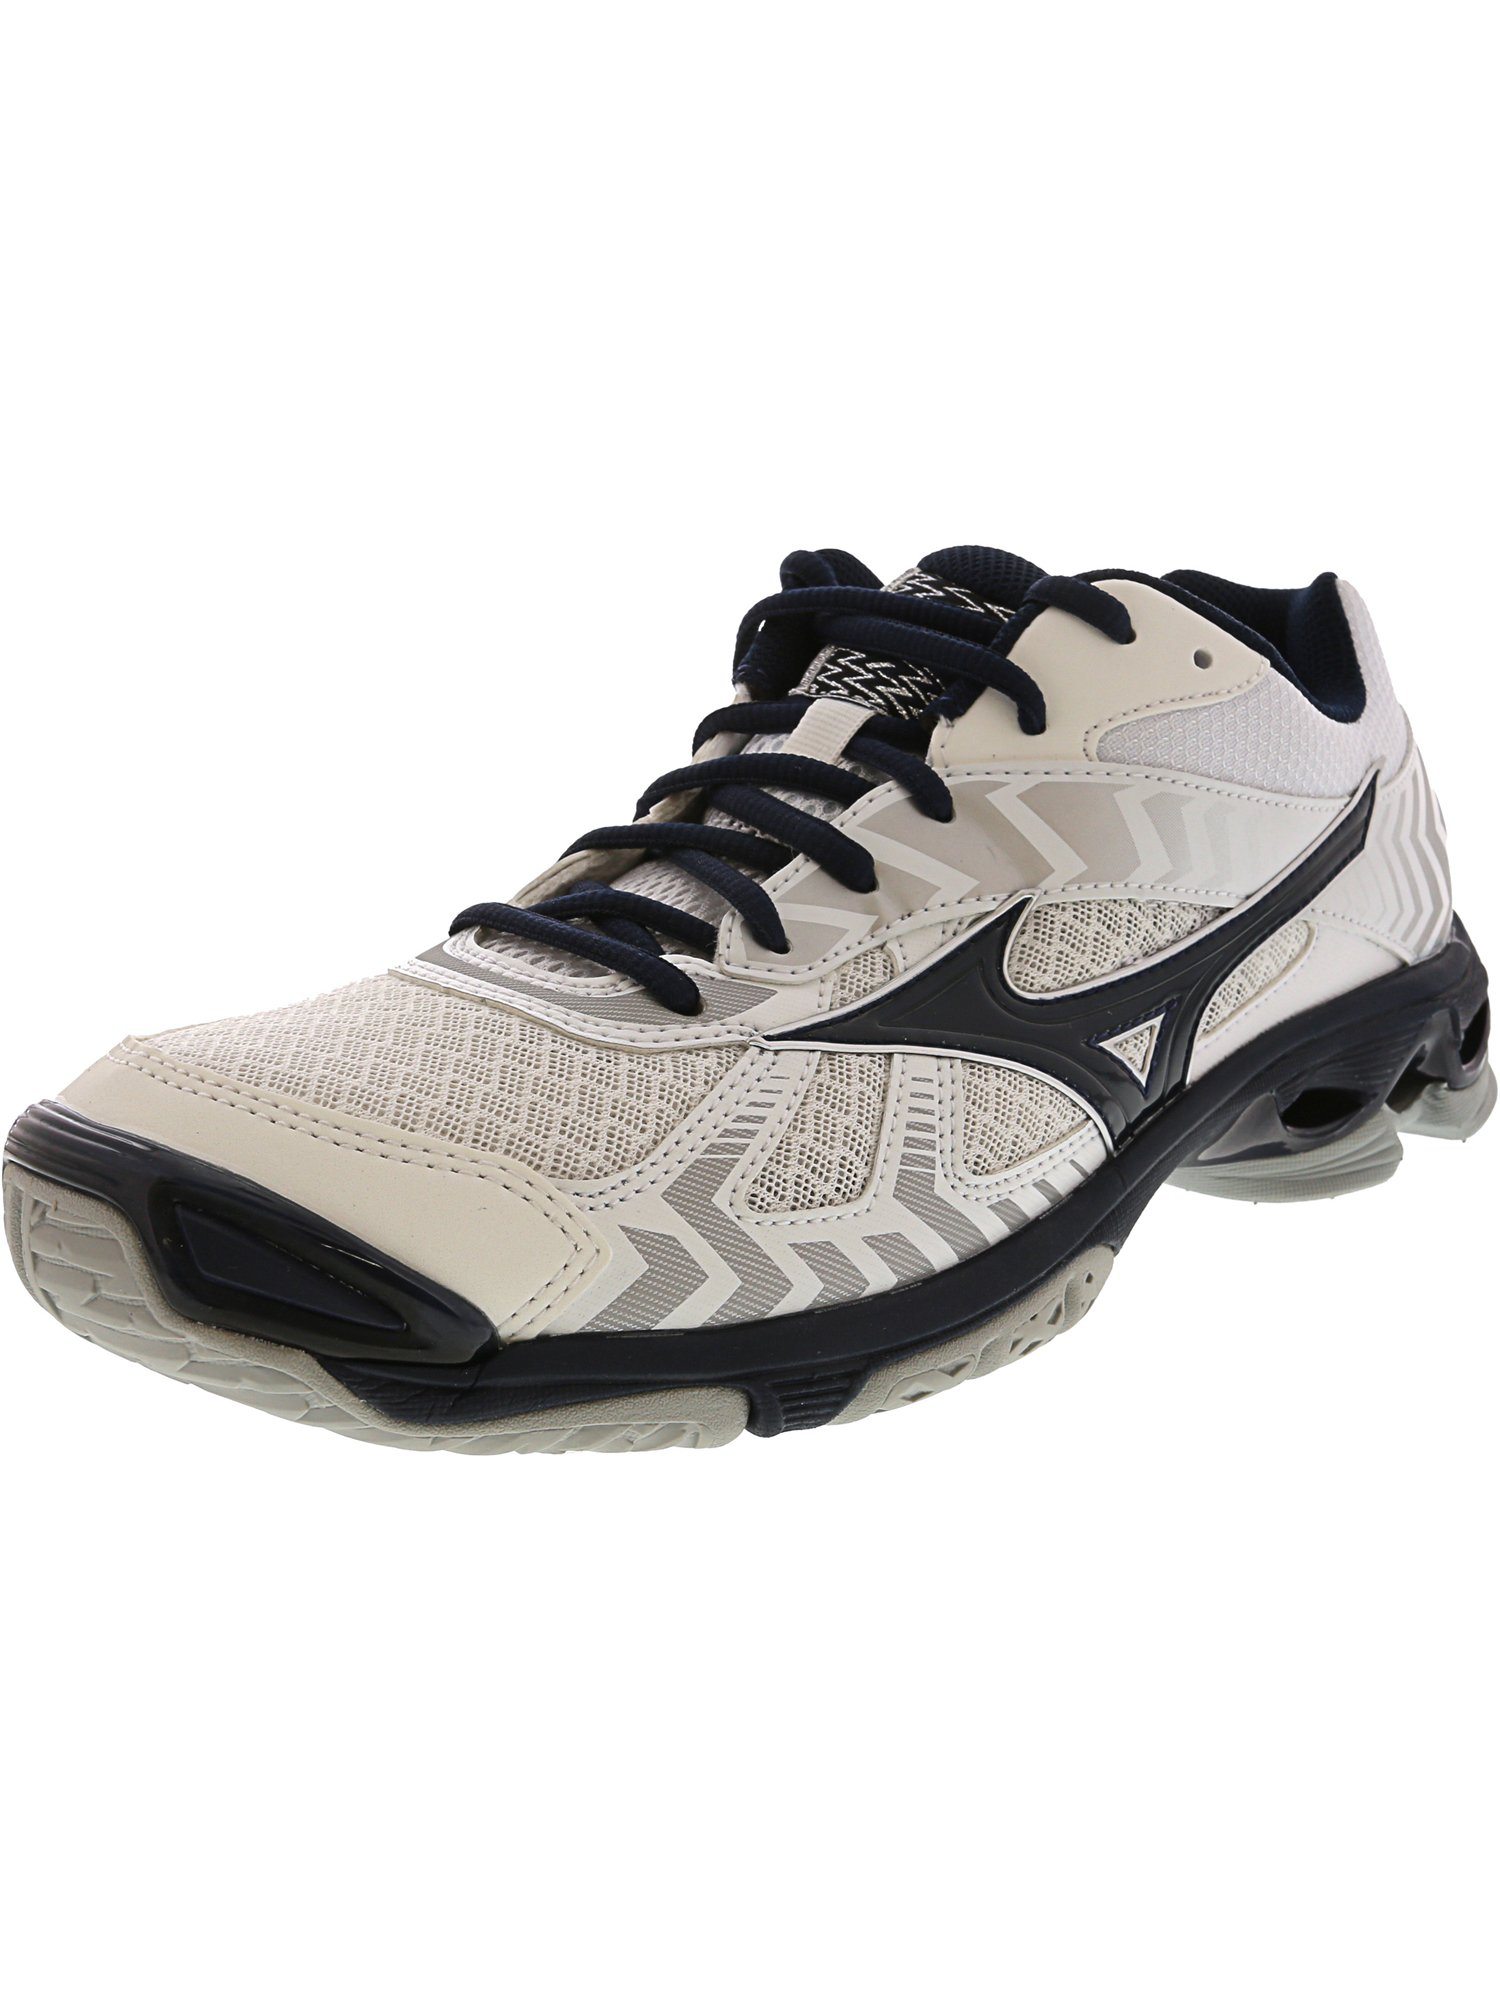 mizuno wave 7 volleyball shoes